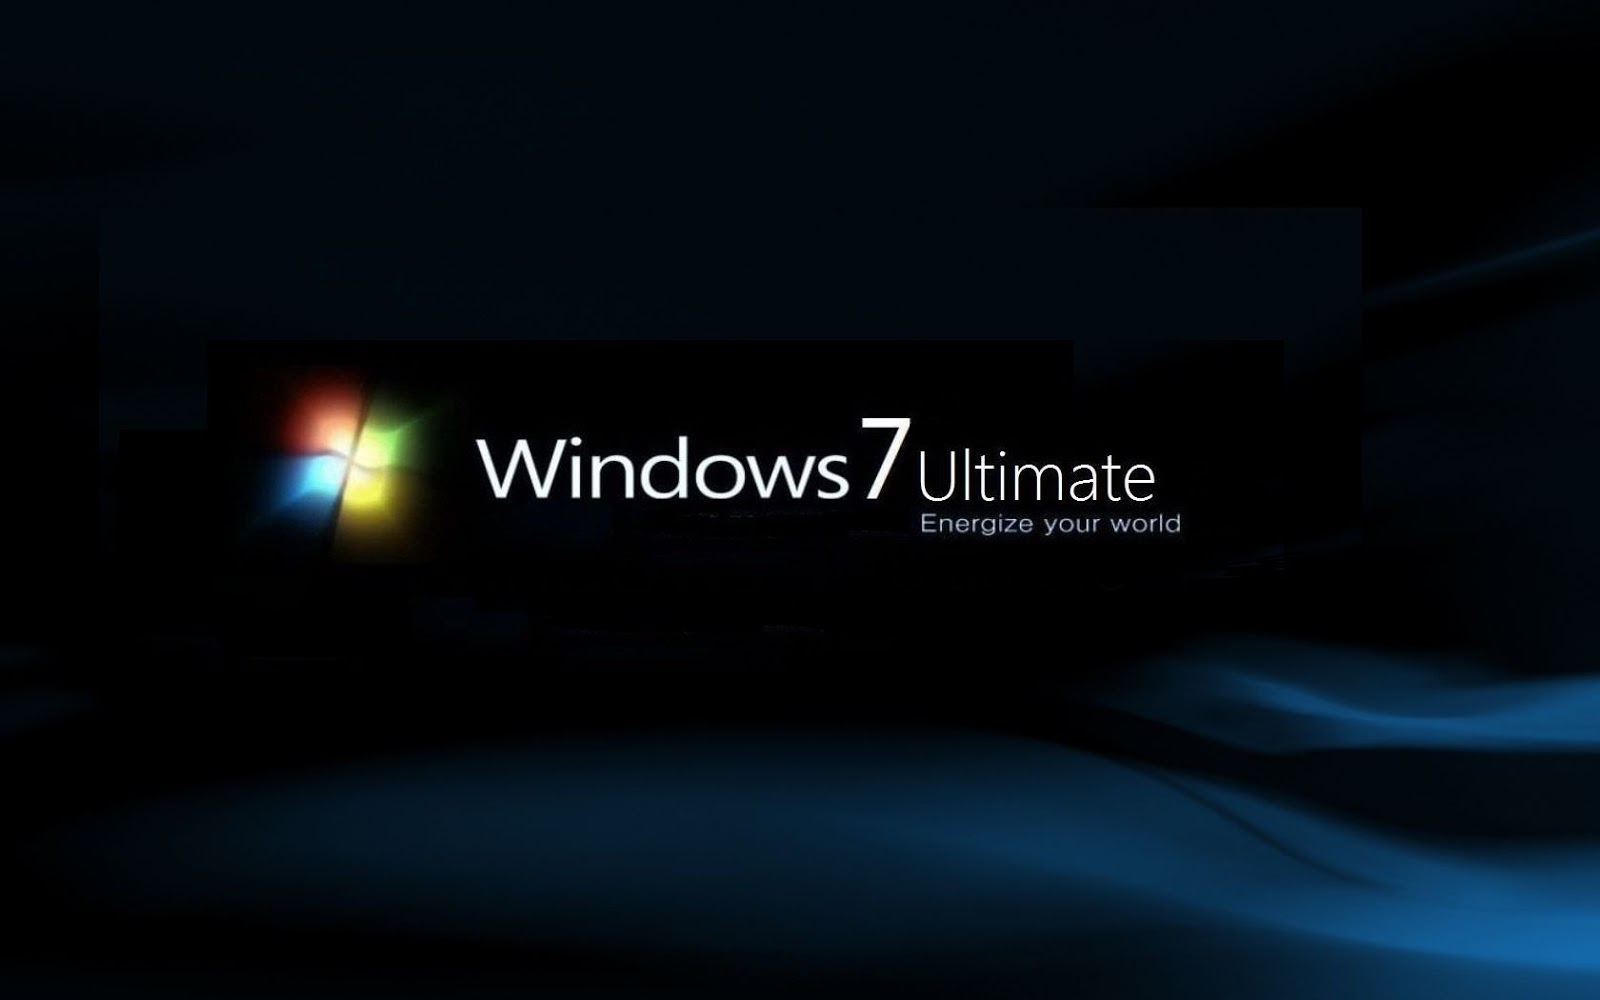 Windows 7 Ultimate Full Version Download ISO 32 / 64 Bit Updated